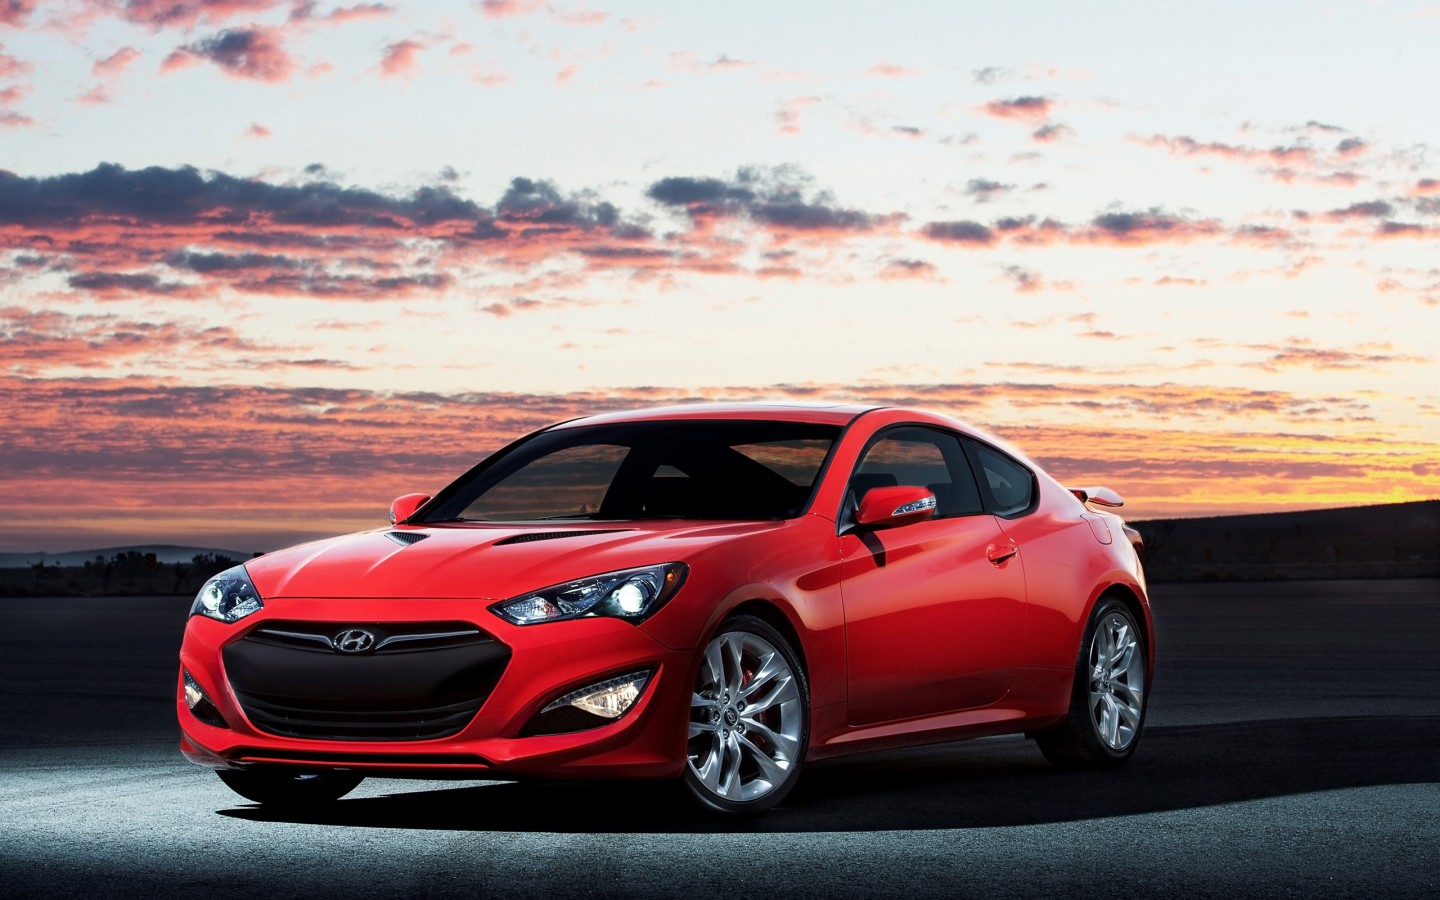 2015 Hyundai Genesis Coupe Wallpaper | HD Car Wallpapers ...